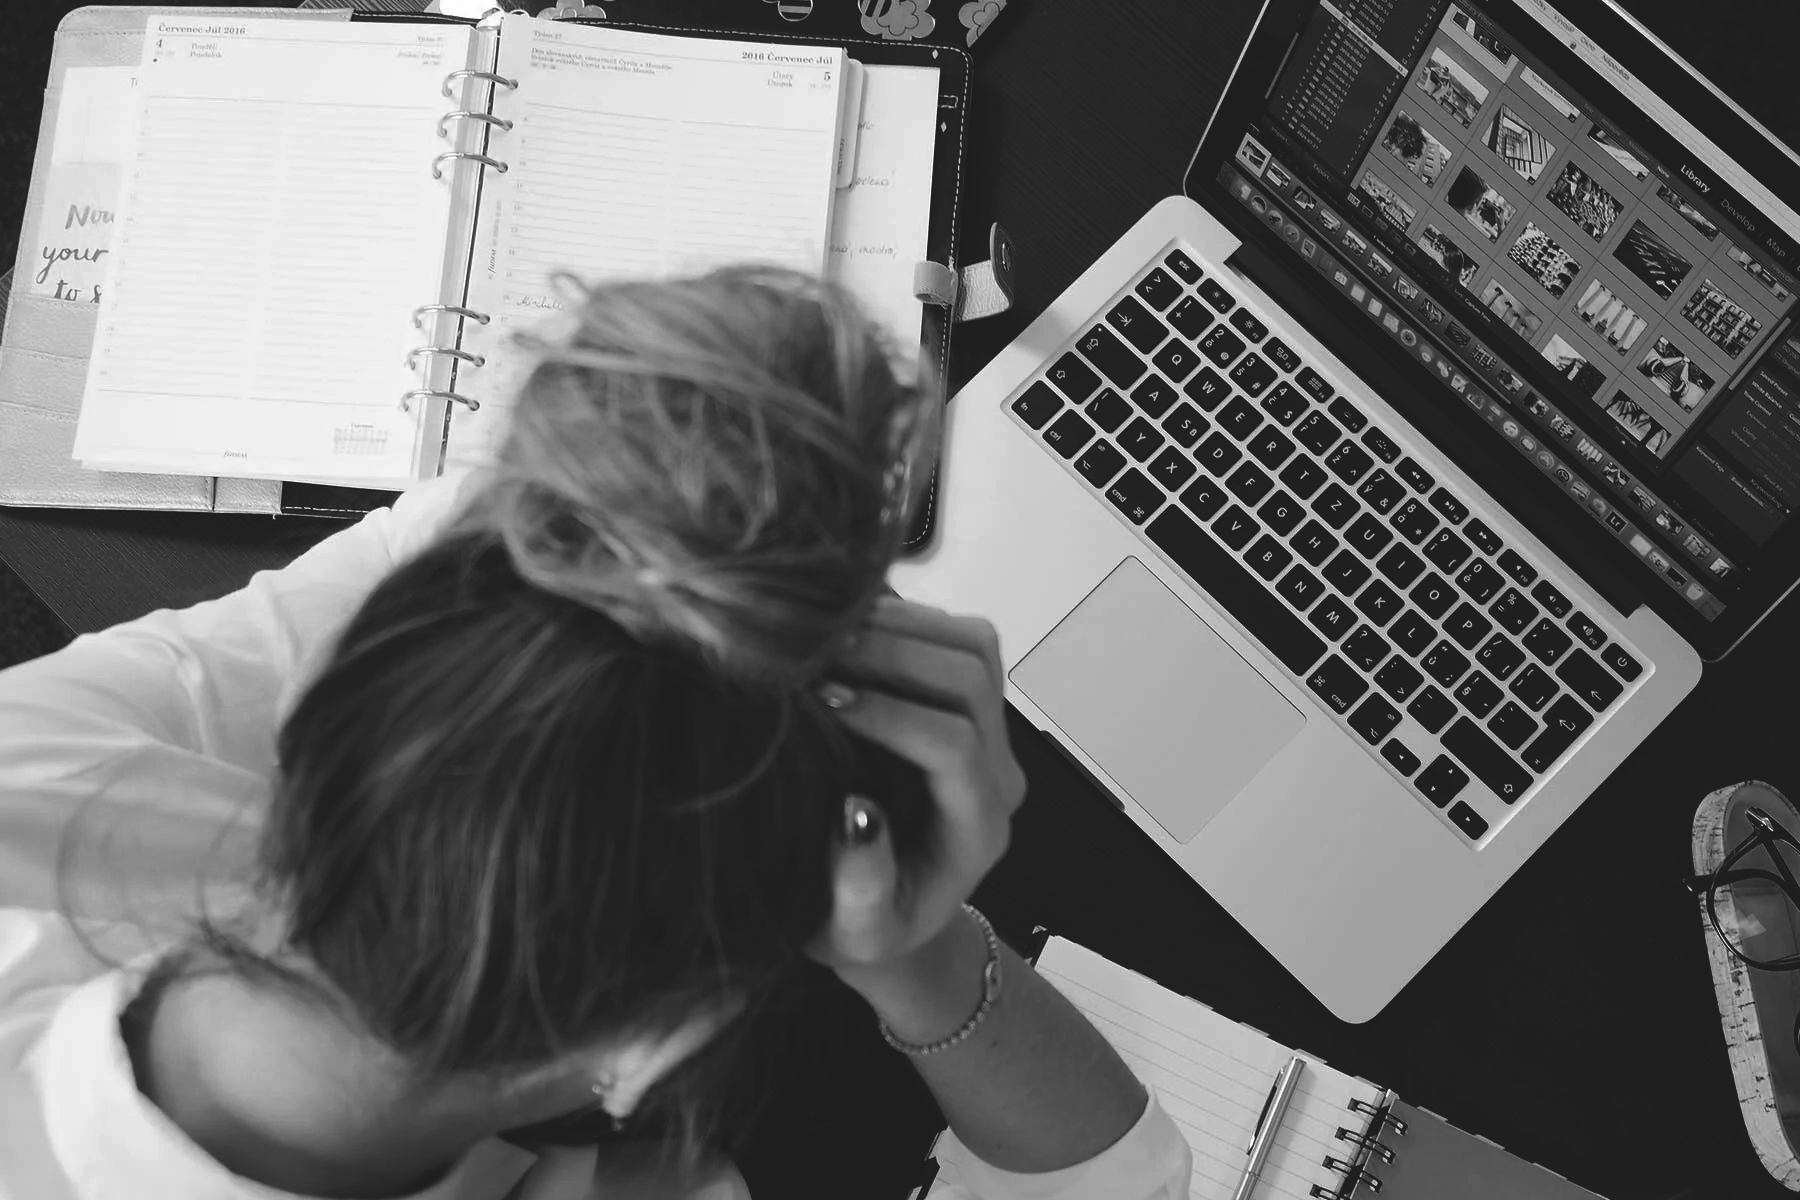 A young woman infront of  a laptop and books frustrated with her head in her hands